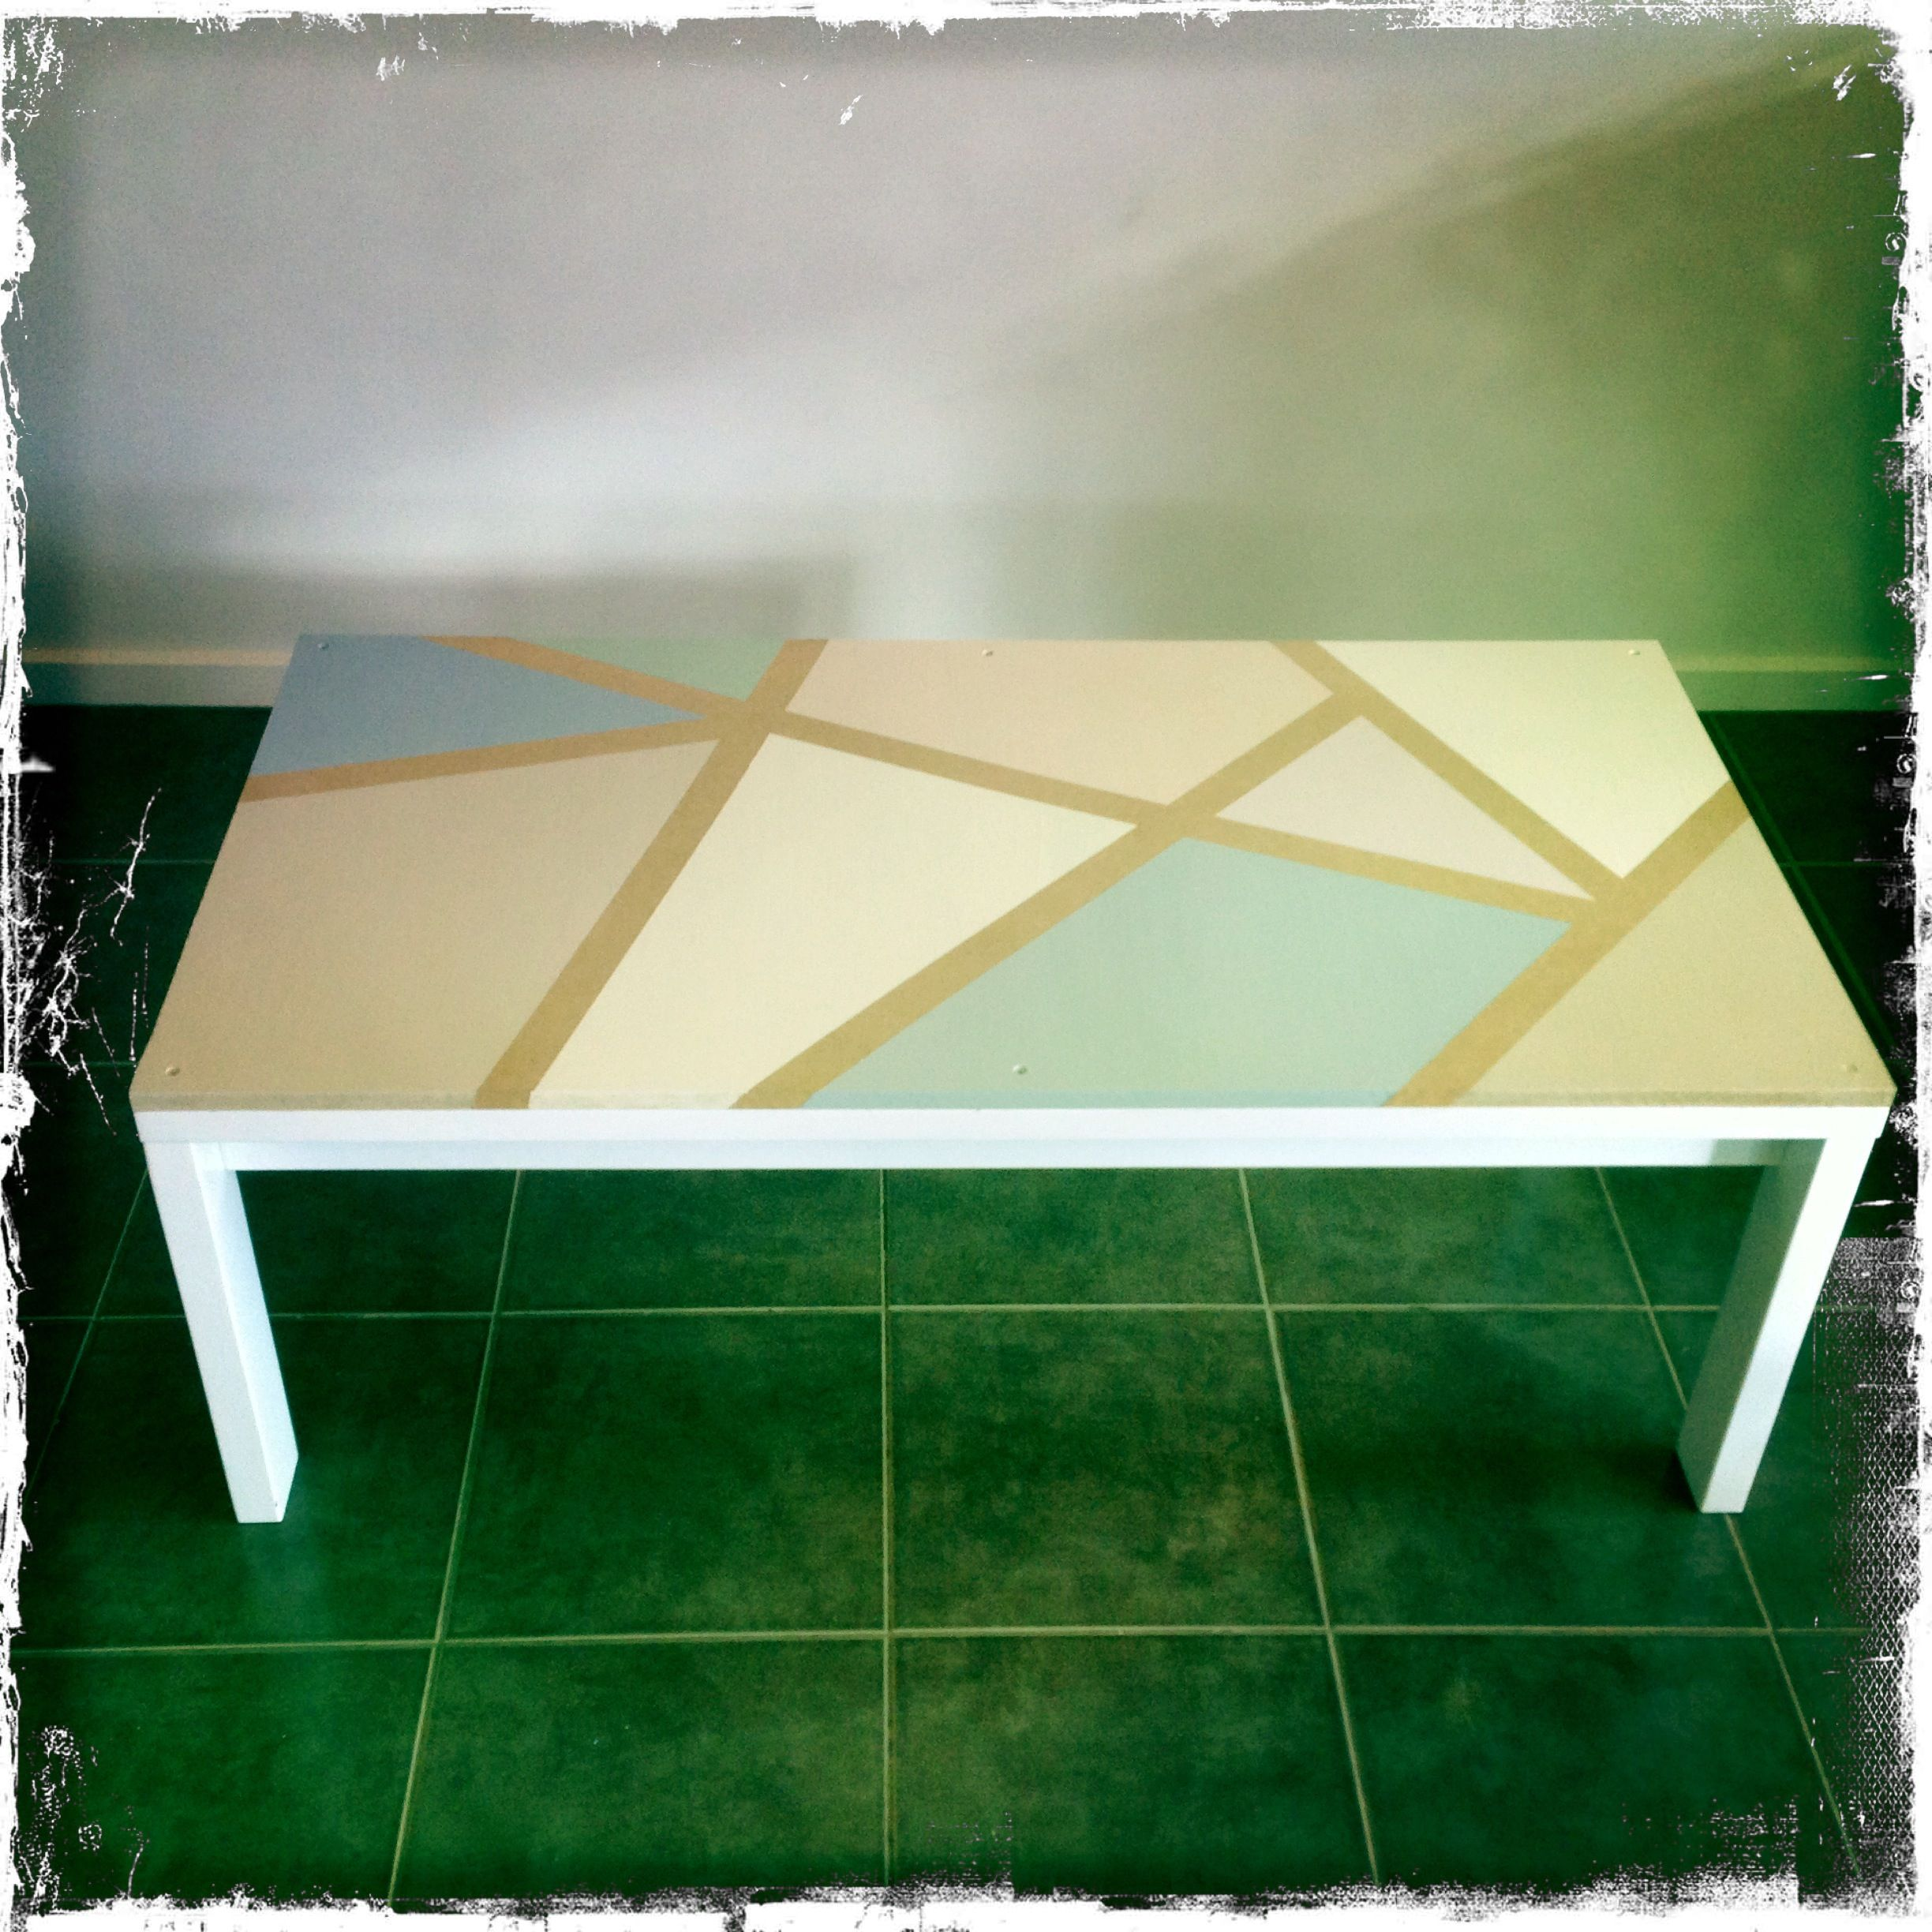 easy diy table top design  using tape on a plywood surface